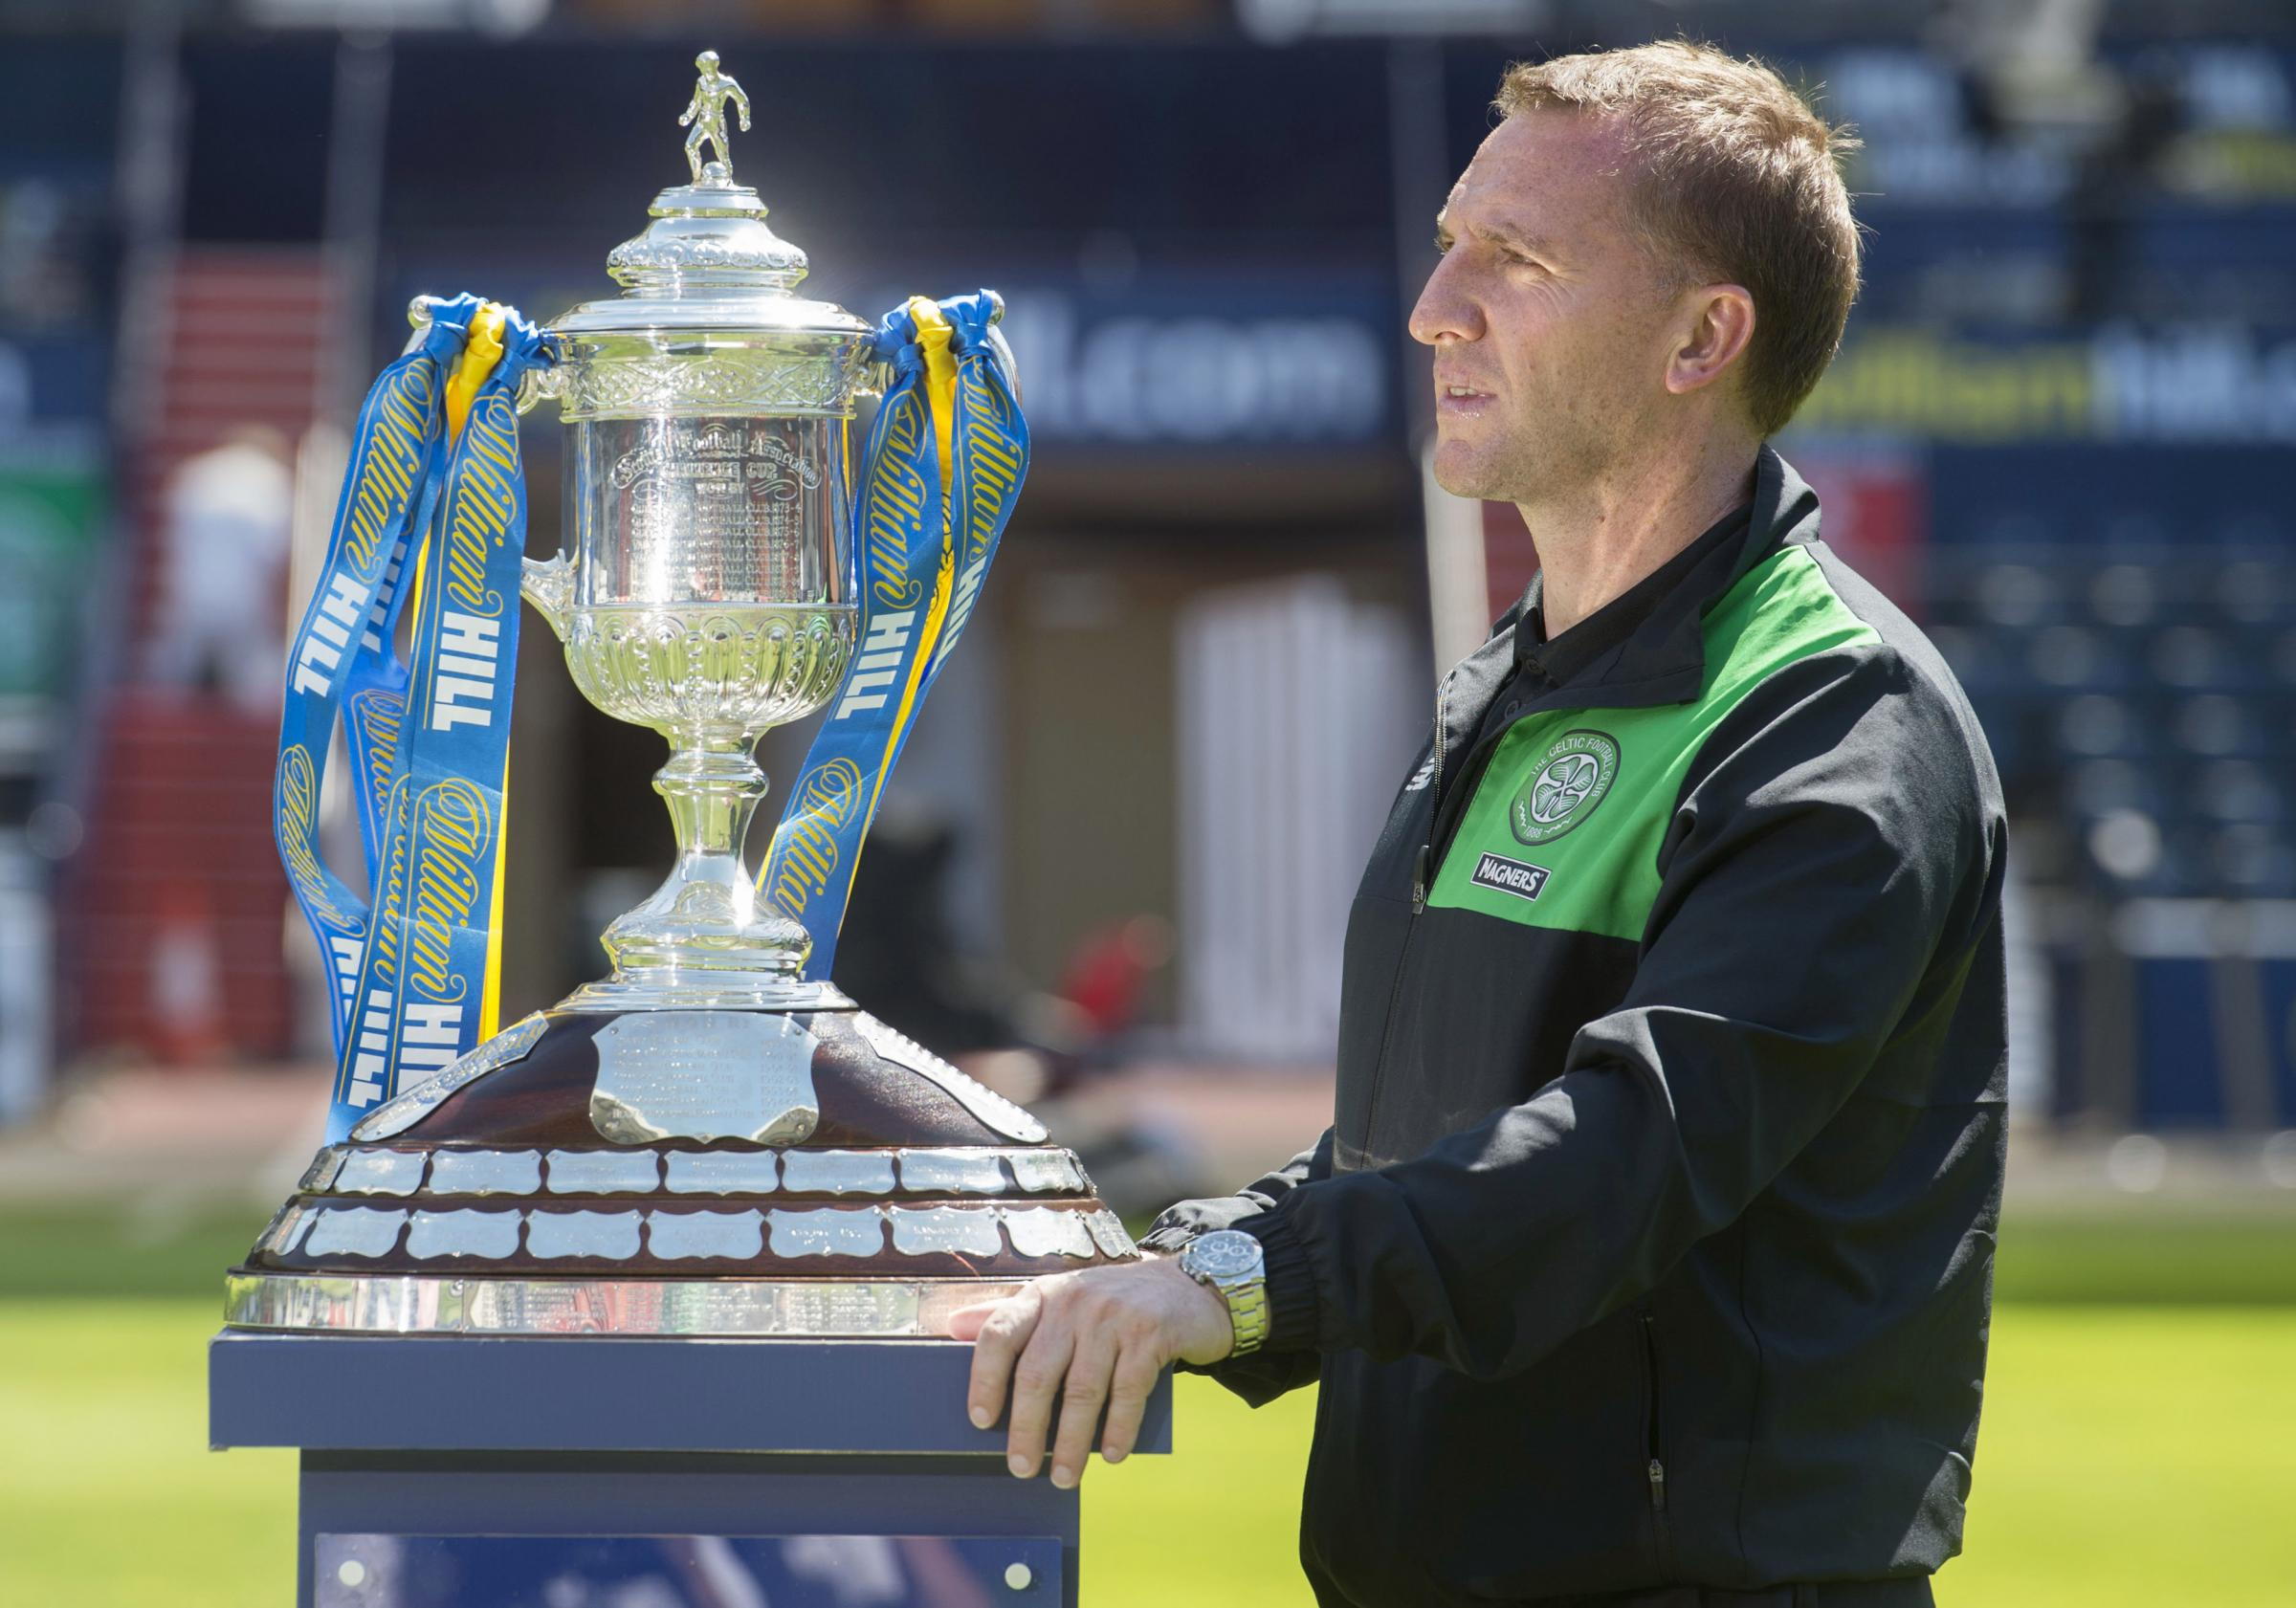 Brendan Rodgers poised to take his place alongside Jock Stein as an all-time Celtic great with undefeated treble